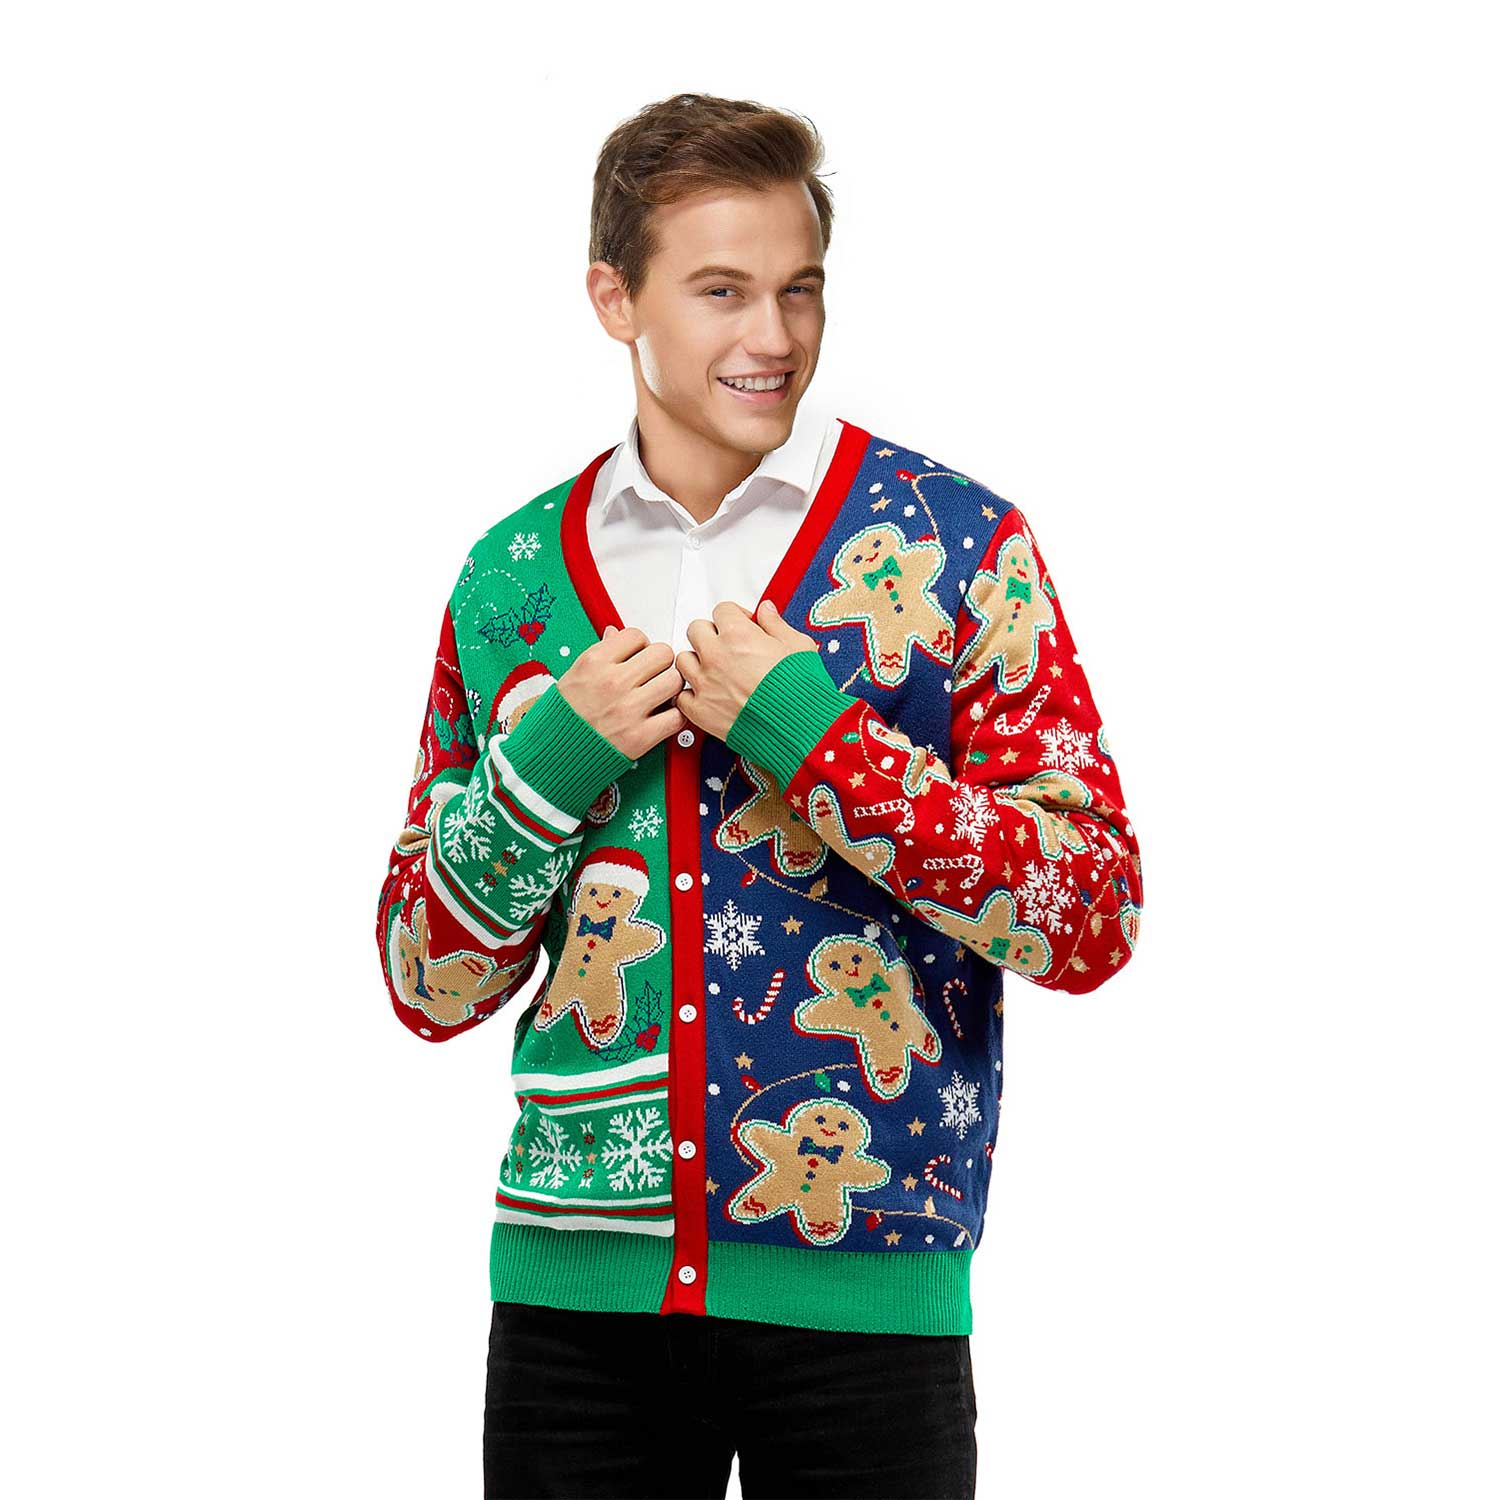 singapore men wearing colourful sweater with cookies patterned